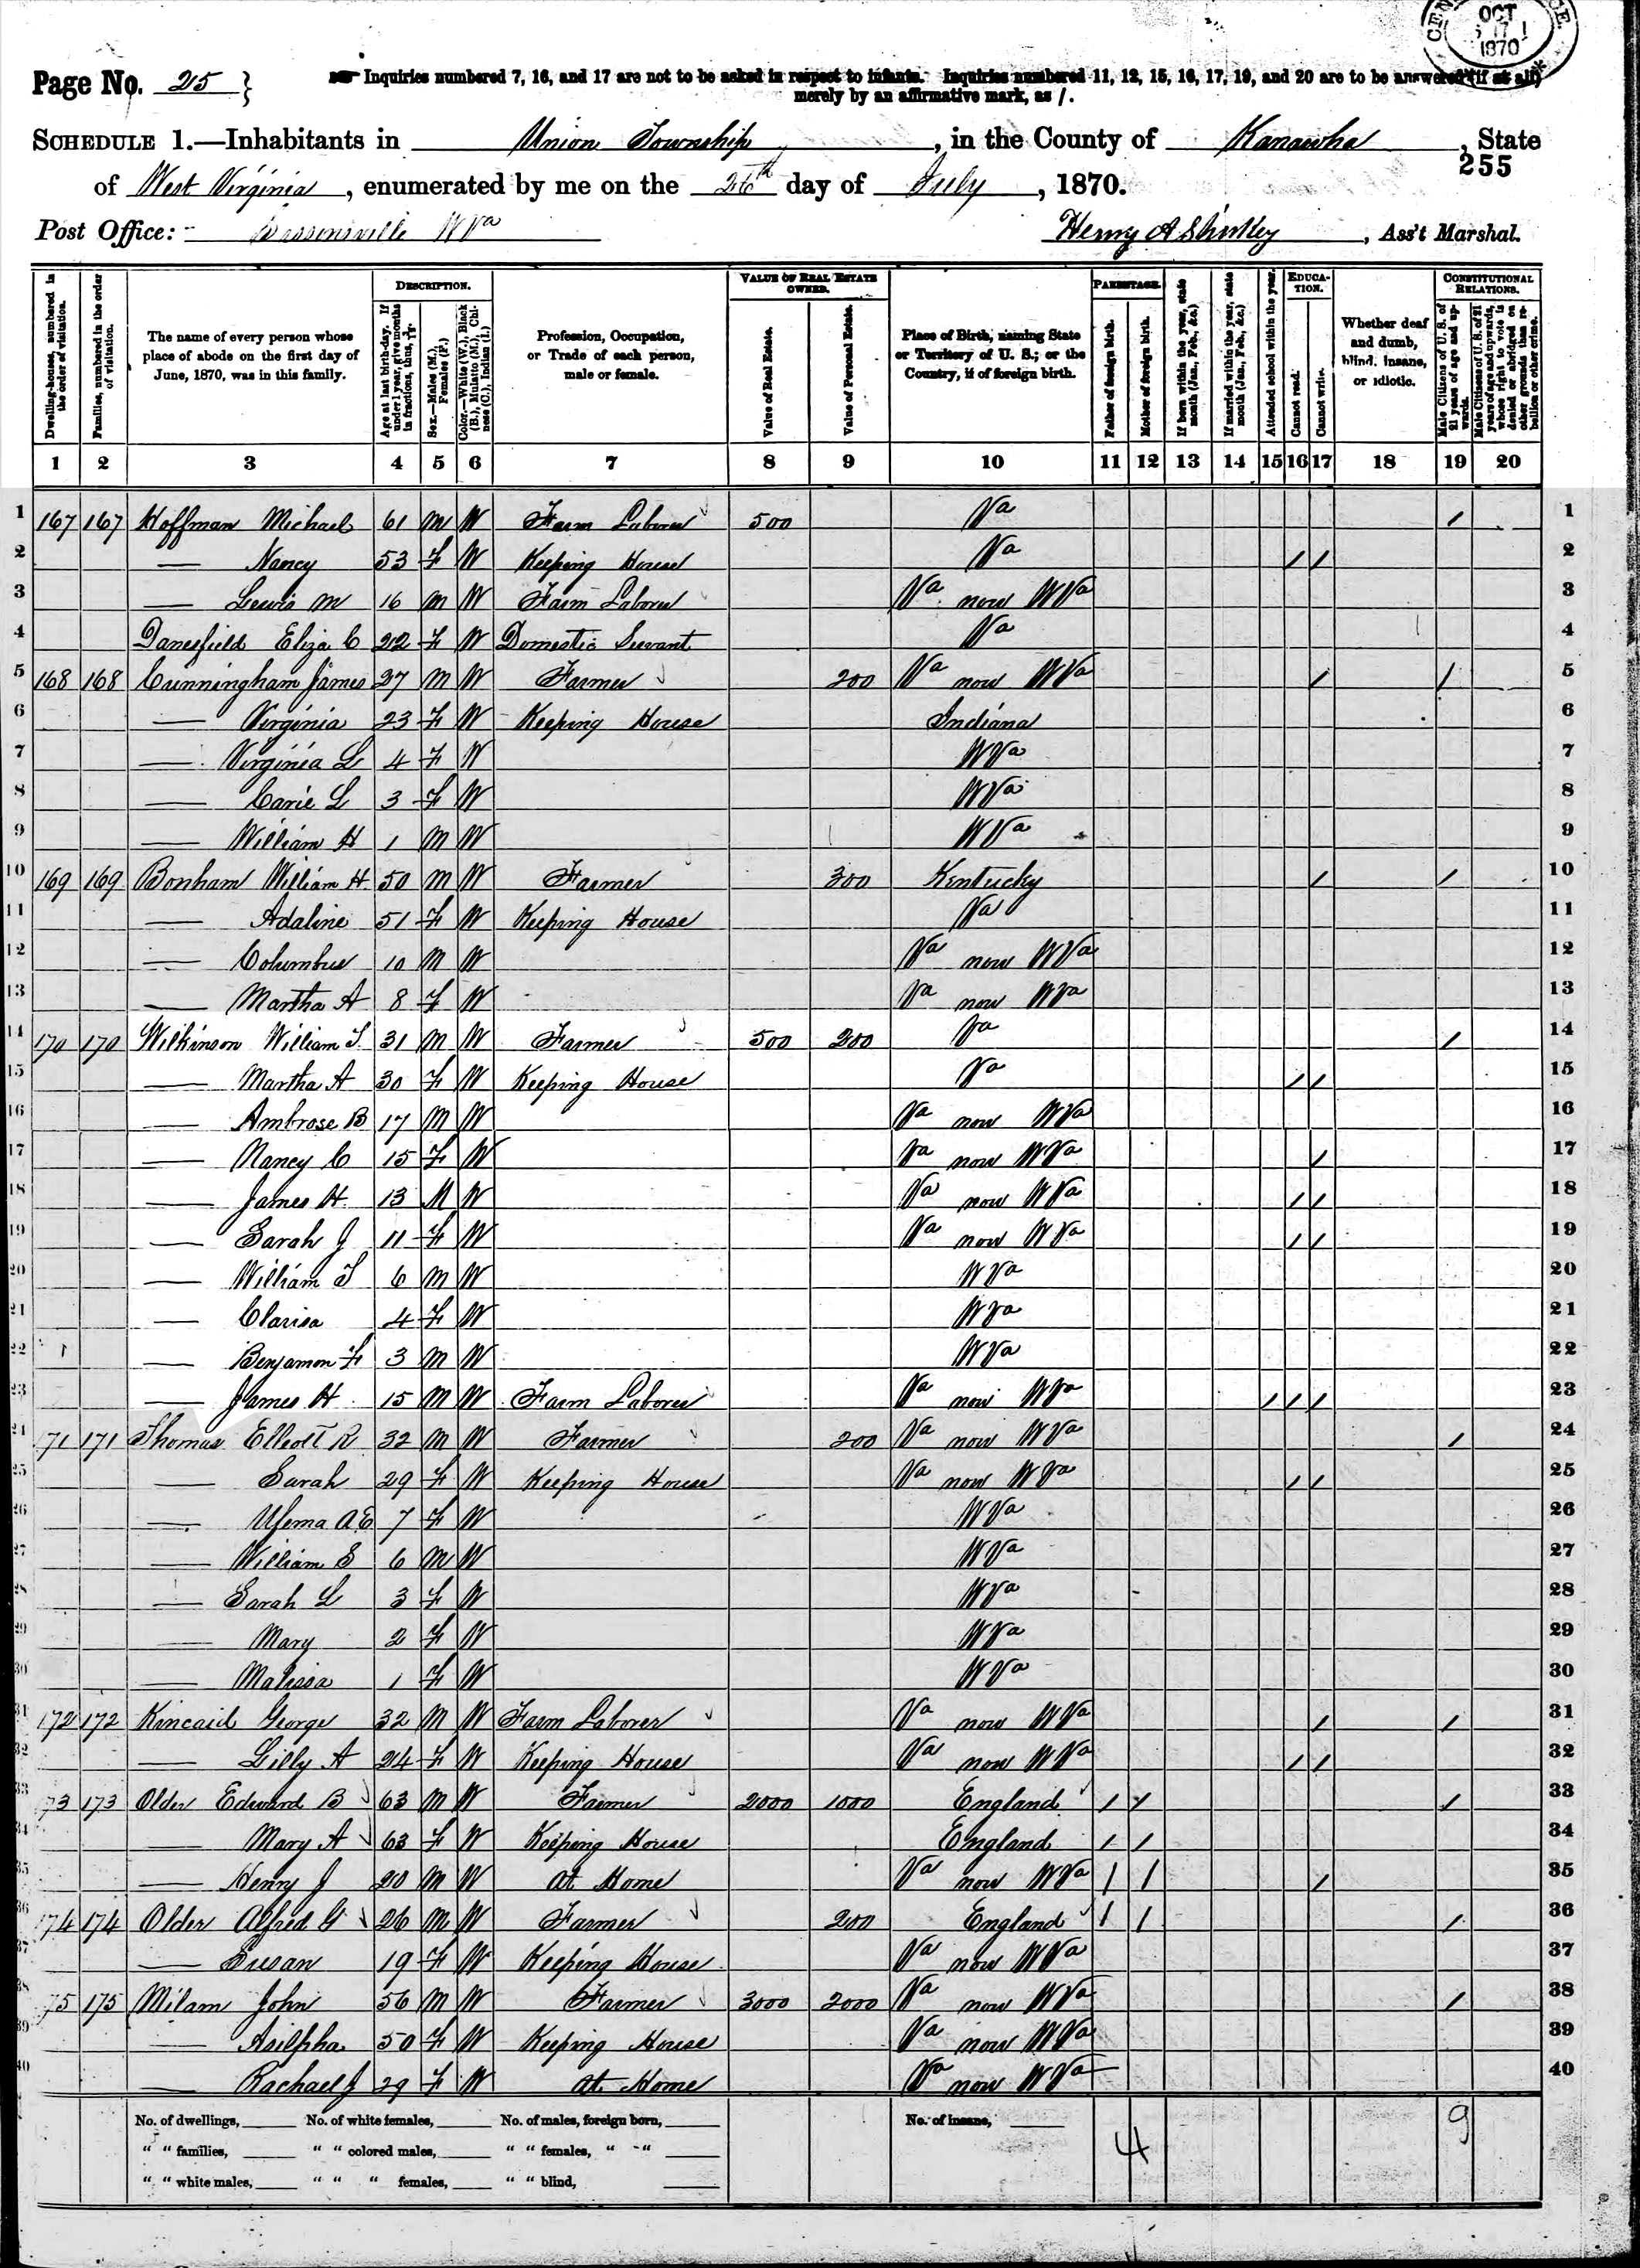 1870-WV Census, Sissonville, Union Township, Kanawha Co, WV